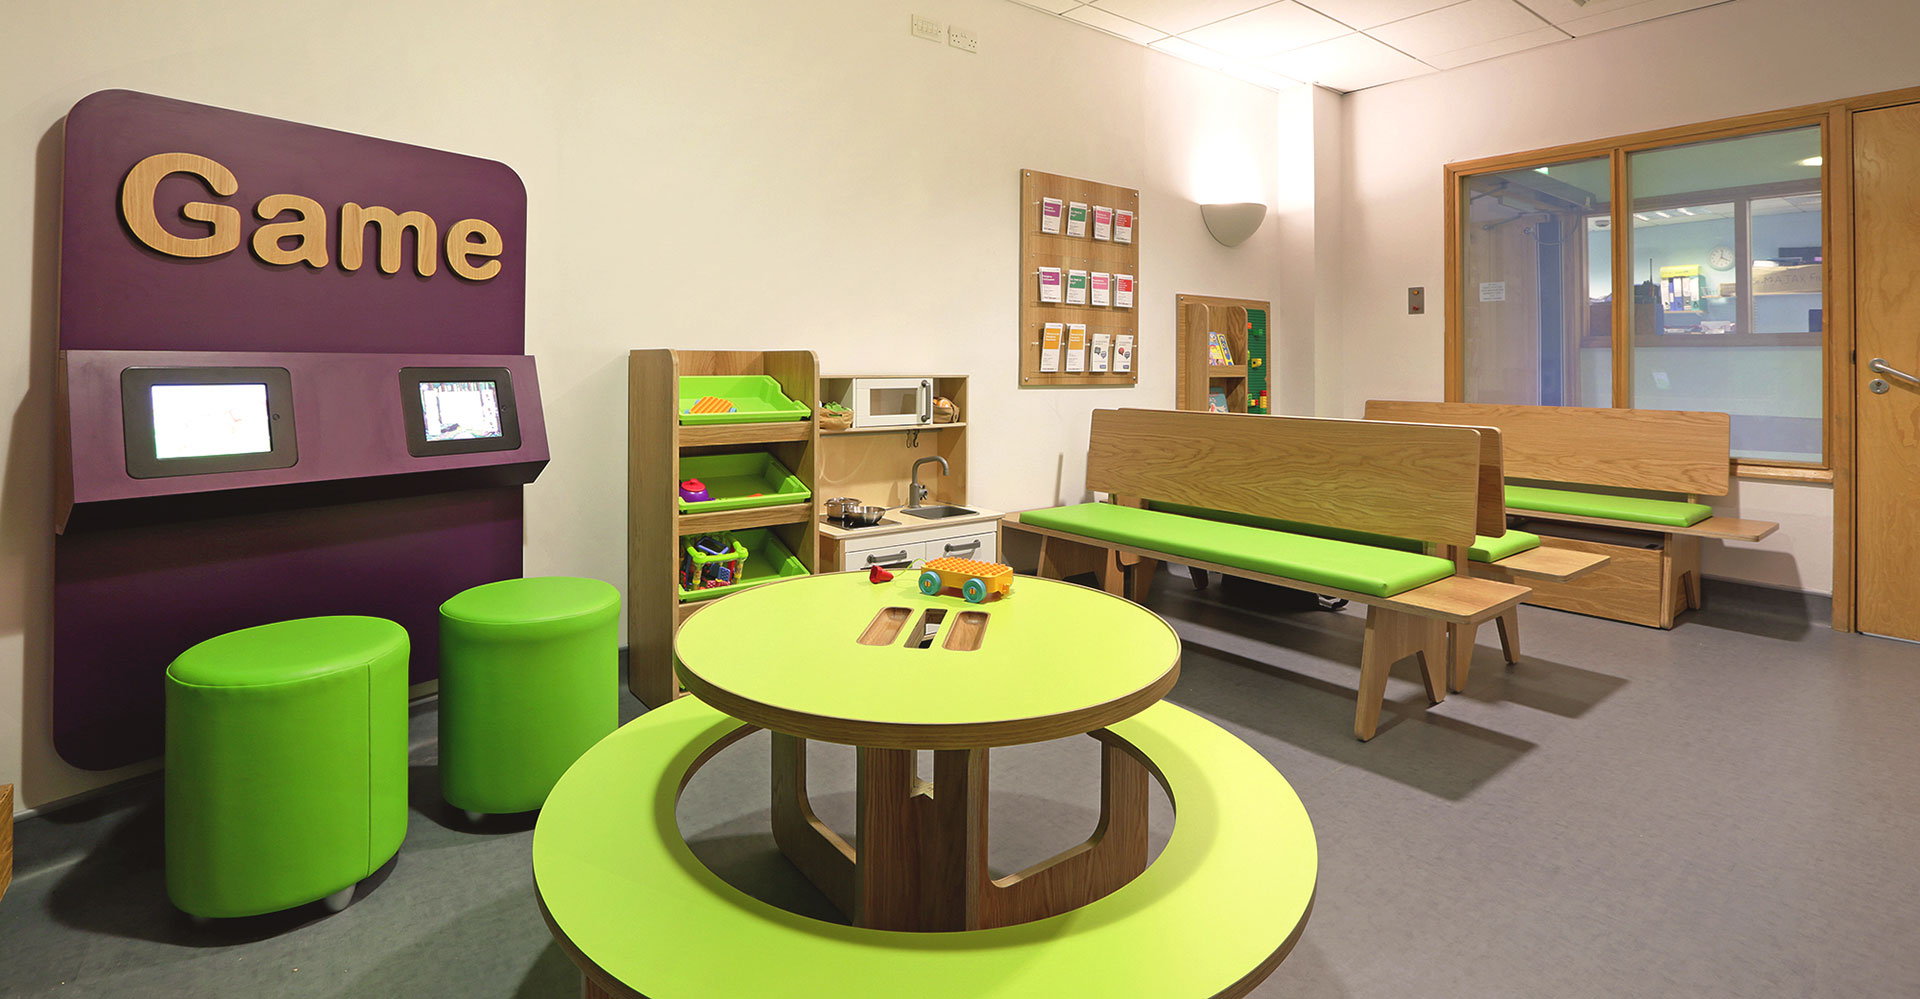 Bespoke furniture designed by Boex for children's A&E waiting area